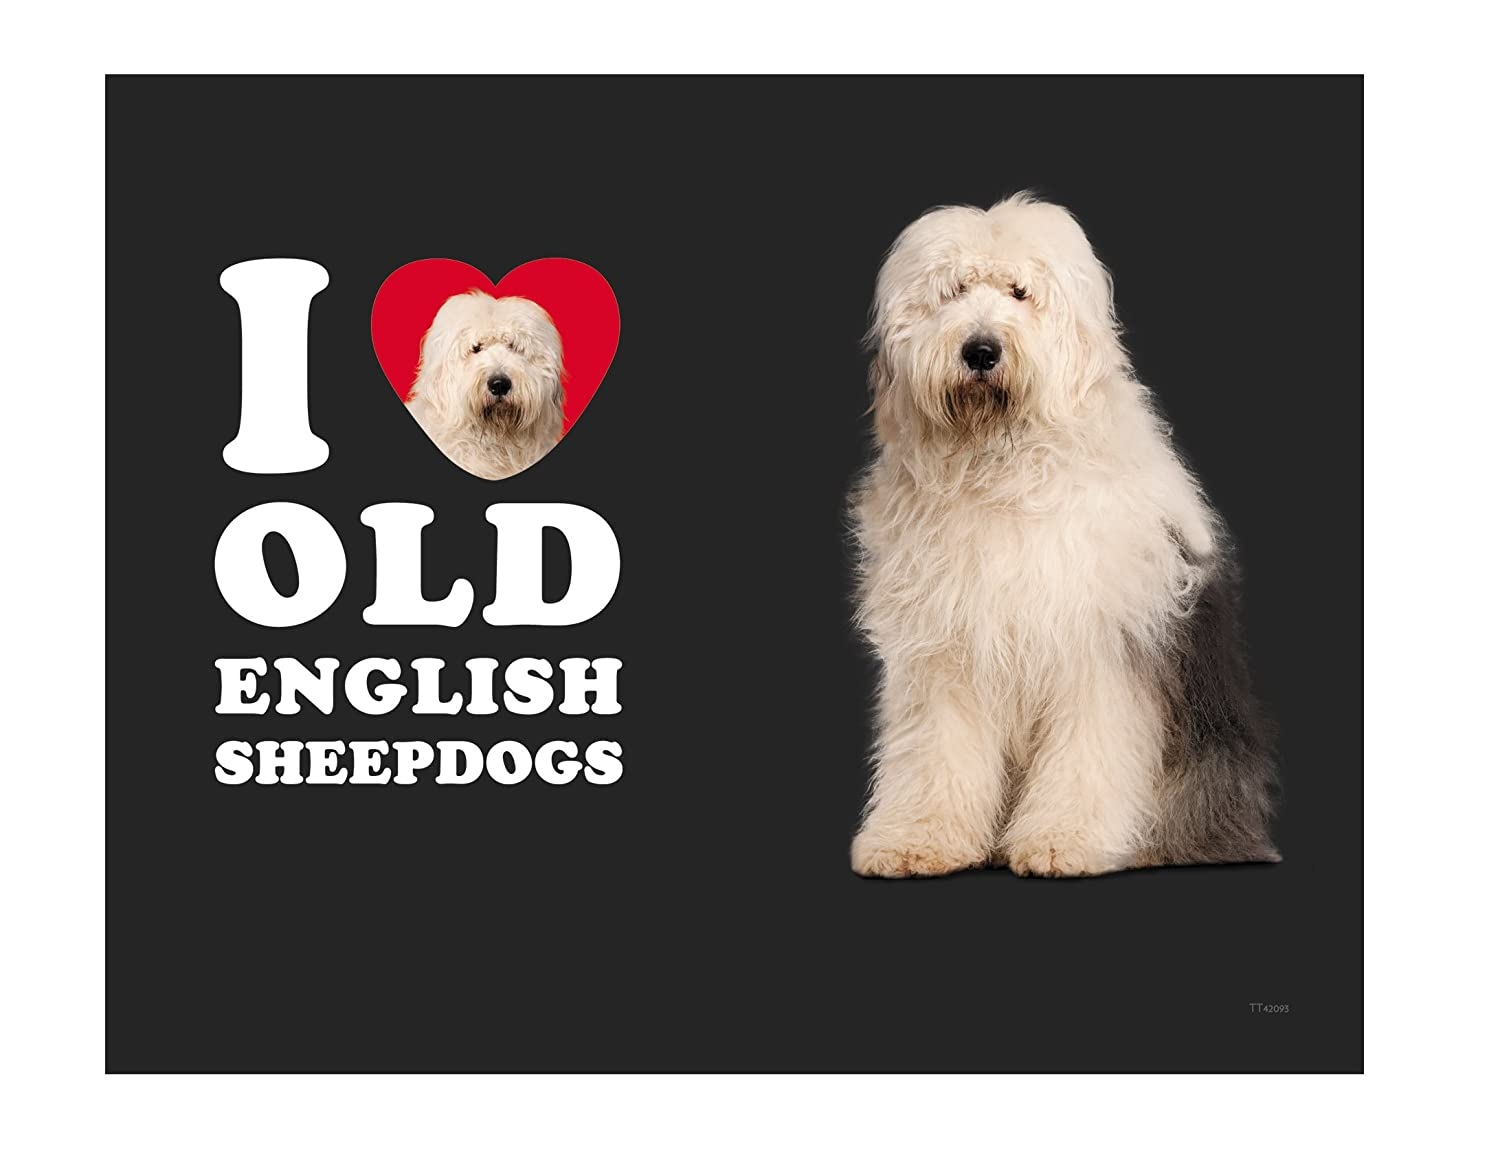 White and Grey 14-Ounce Tree-Free Greetings TT42093 I Heart Old English Sheepdogs 18-8 Double Wall Stainless Artful Tumbler